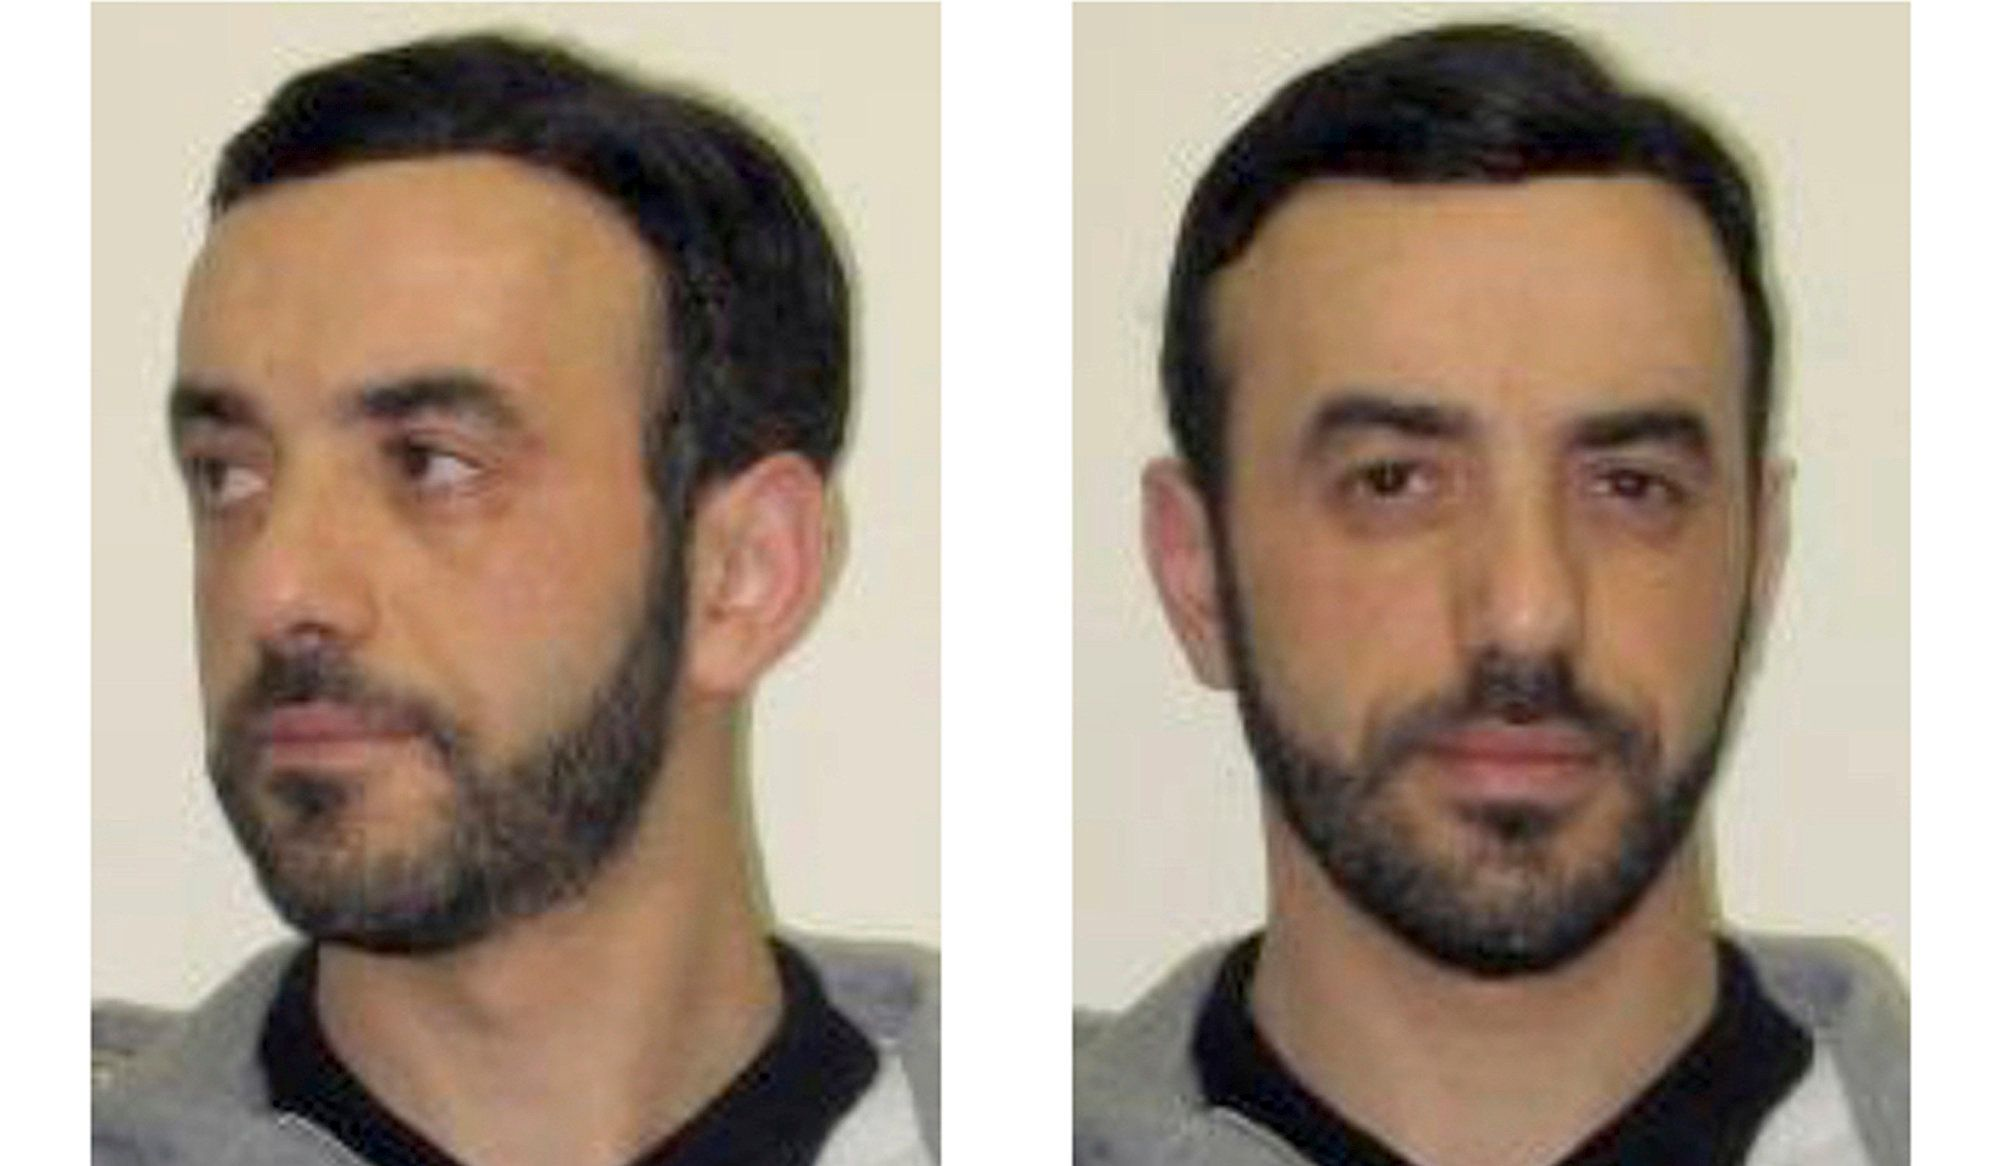 FILE - This July 9, 2018 file screenshot of the Interpol website shows portraits of notorious French criminal, Redoine Faid, as part of Interpol's wanted notice. Police have caught one of France's most wanted men, three months after his spectacular helicopter escape from prison. French Justice Minister Nicole Belloubet said on Europe 1 radio that Redouine Faid was arrested early Wednesday in Creil, north of Paris, without resistance. (Interpol via AP, File)